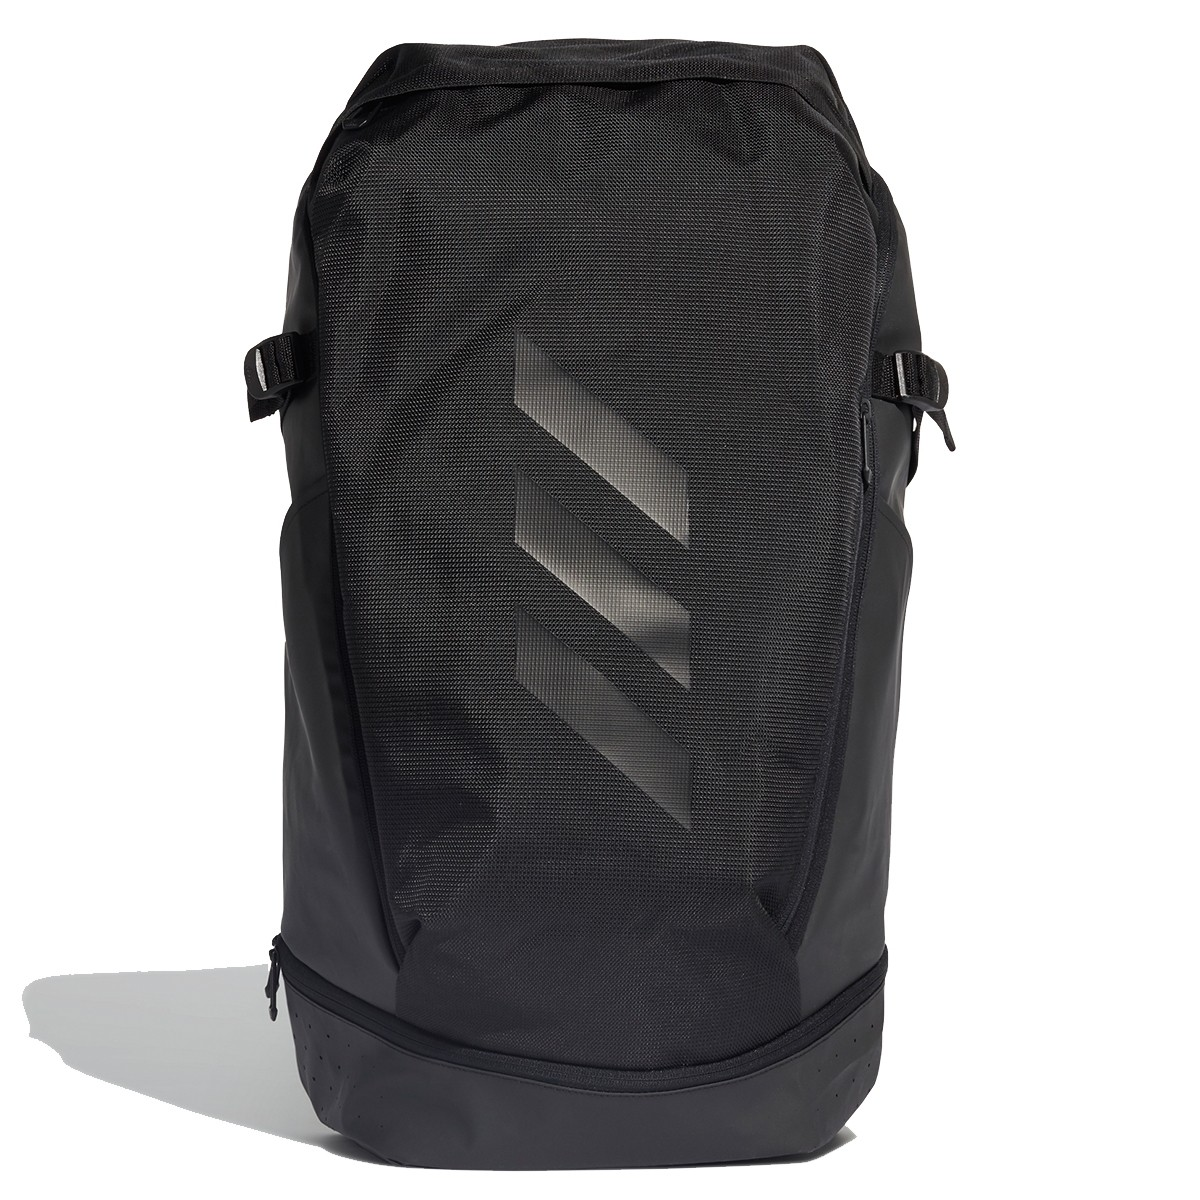 ADIDAS Creator 365 Backpack 'Black'